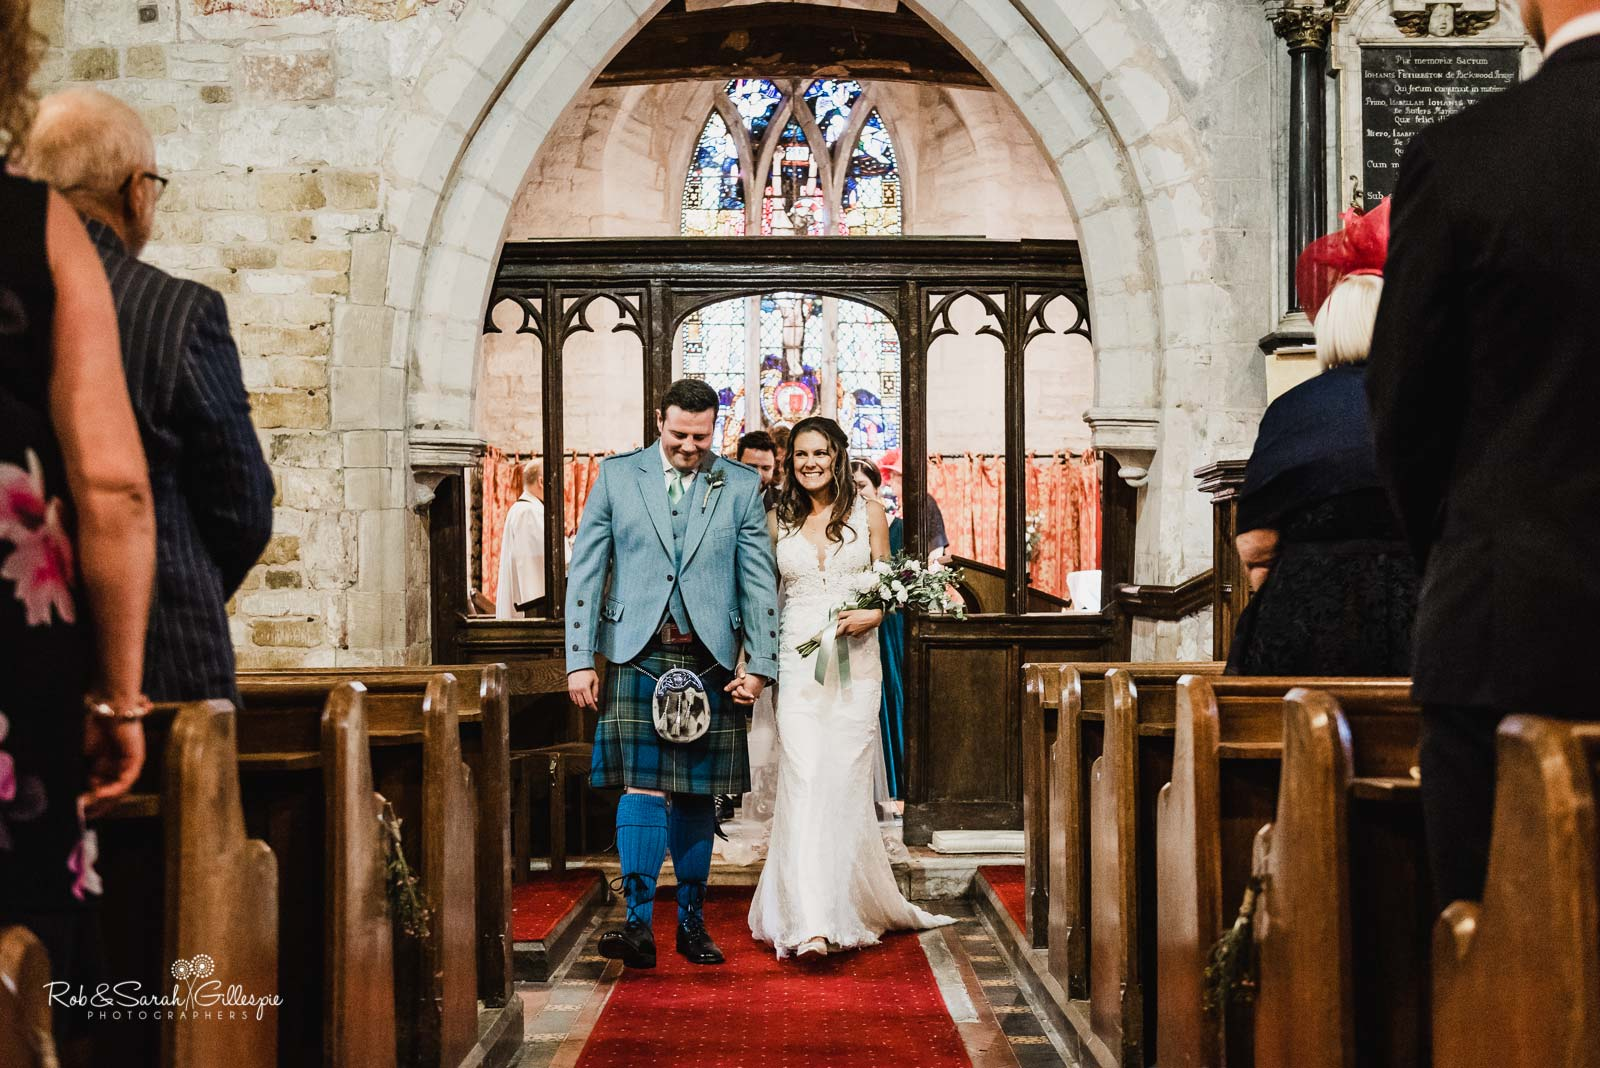 Bride and groom married at St Giles church Packwood in Warwickshire